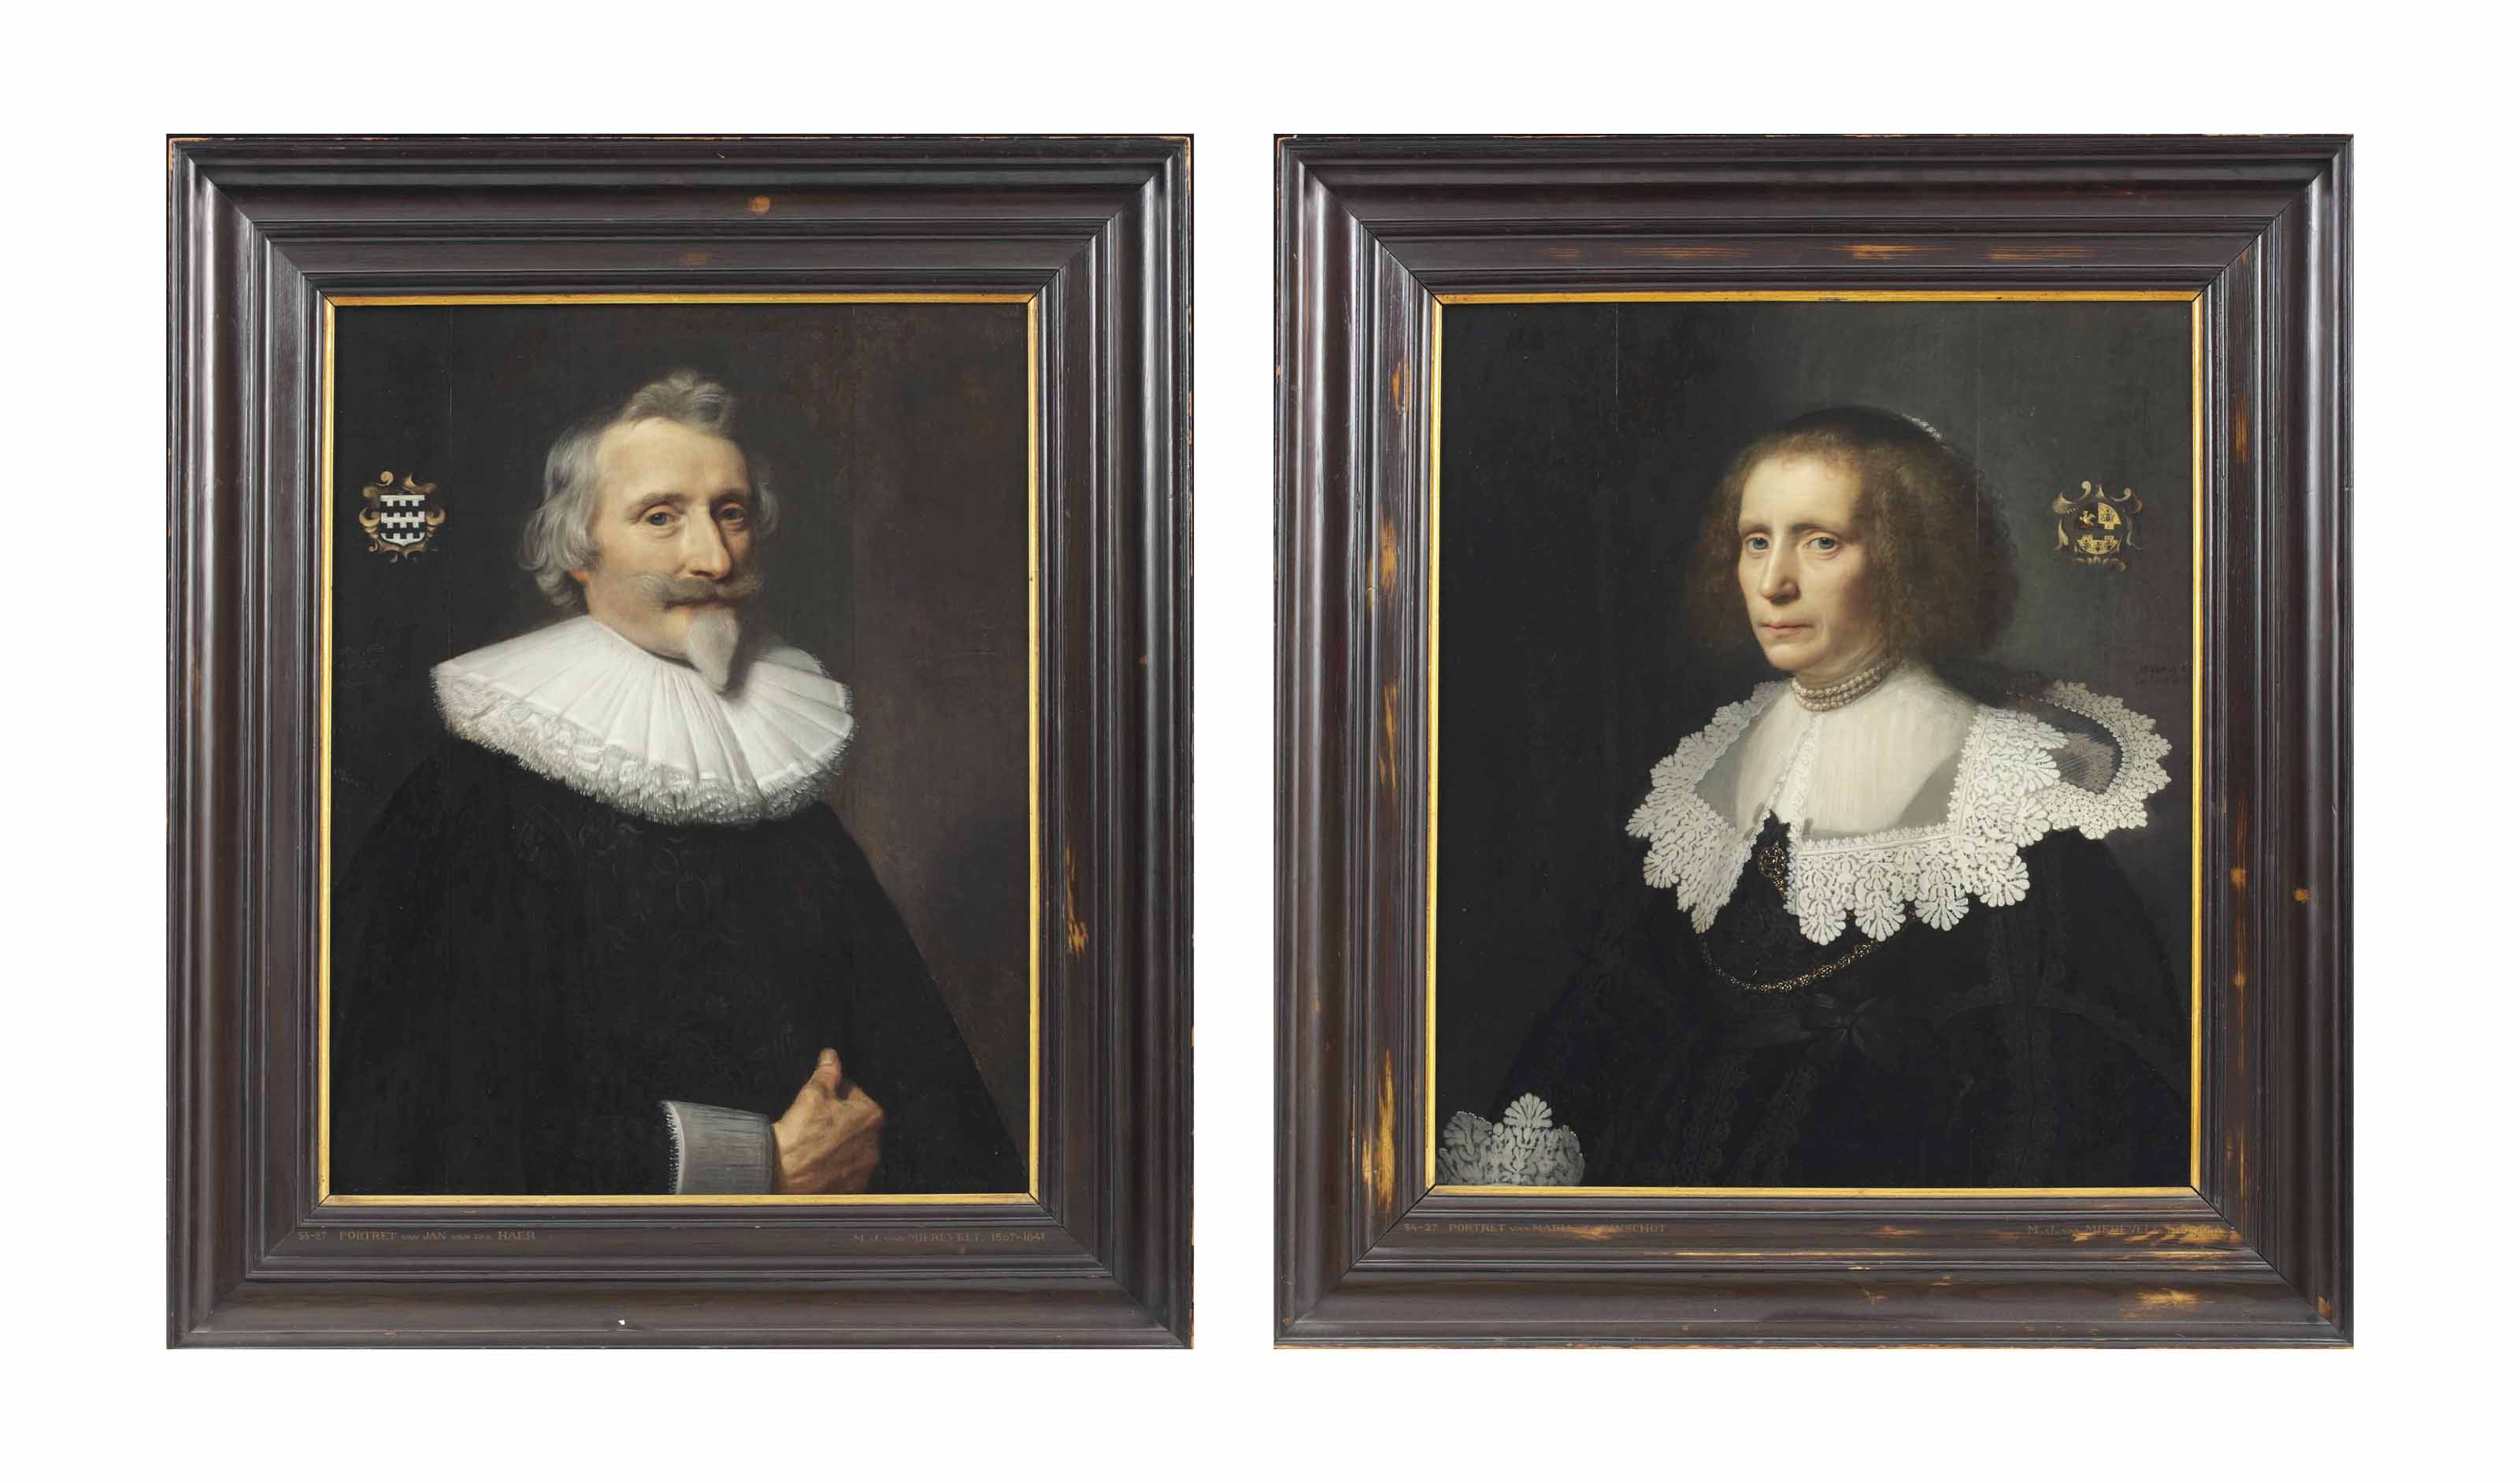 Portrait of Jan van der Haer (1573-1646), half-length, in a black cape over a doublet, and a lace ruff; and Portrait of Maria van Kinschot (1589-1648), half-length, in a black lace-trimmed dress with a flat lace-trimmed collar and three strings of pearls